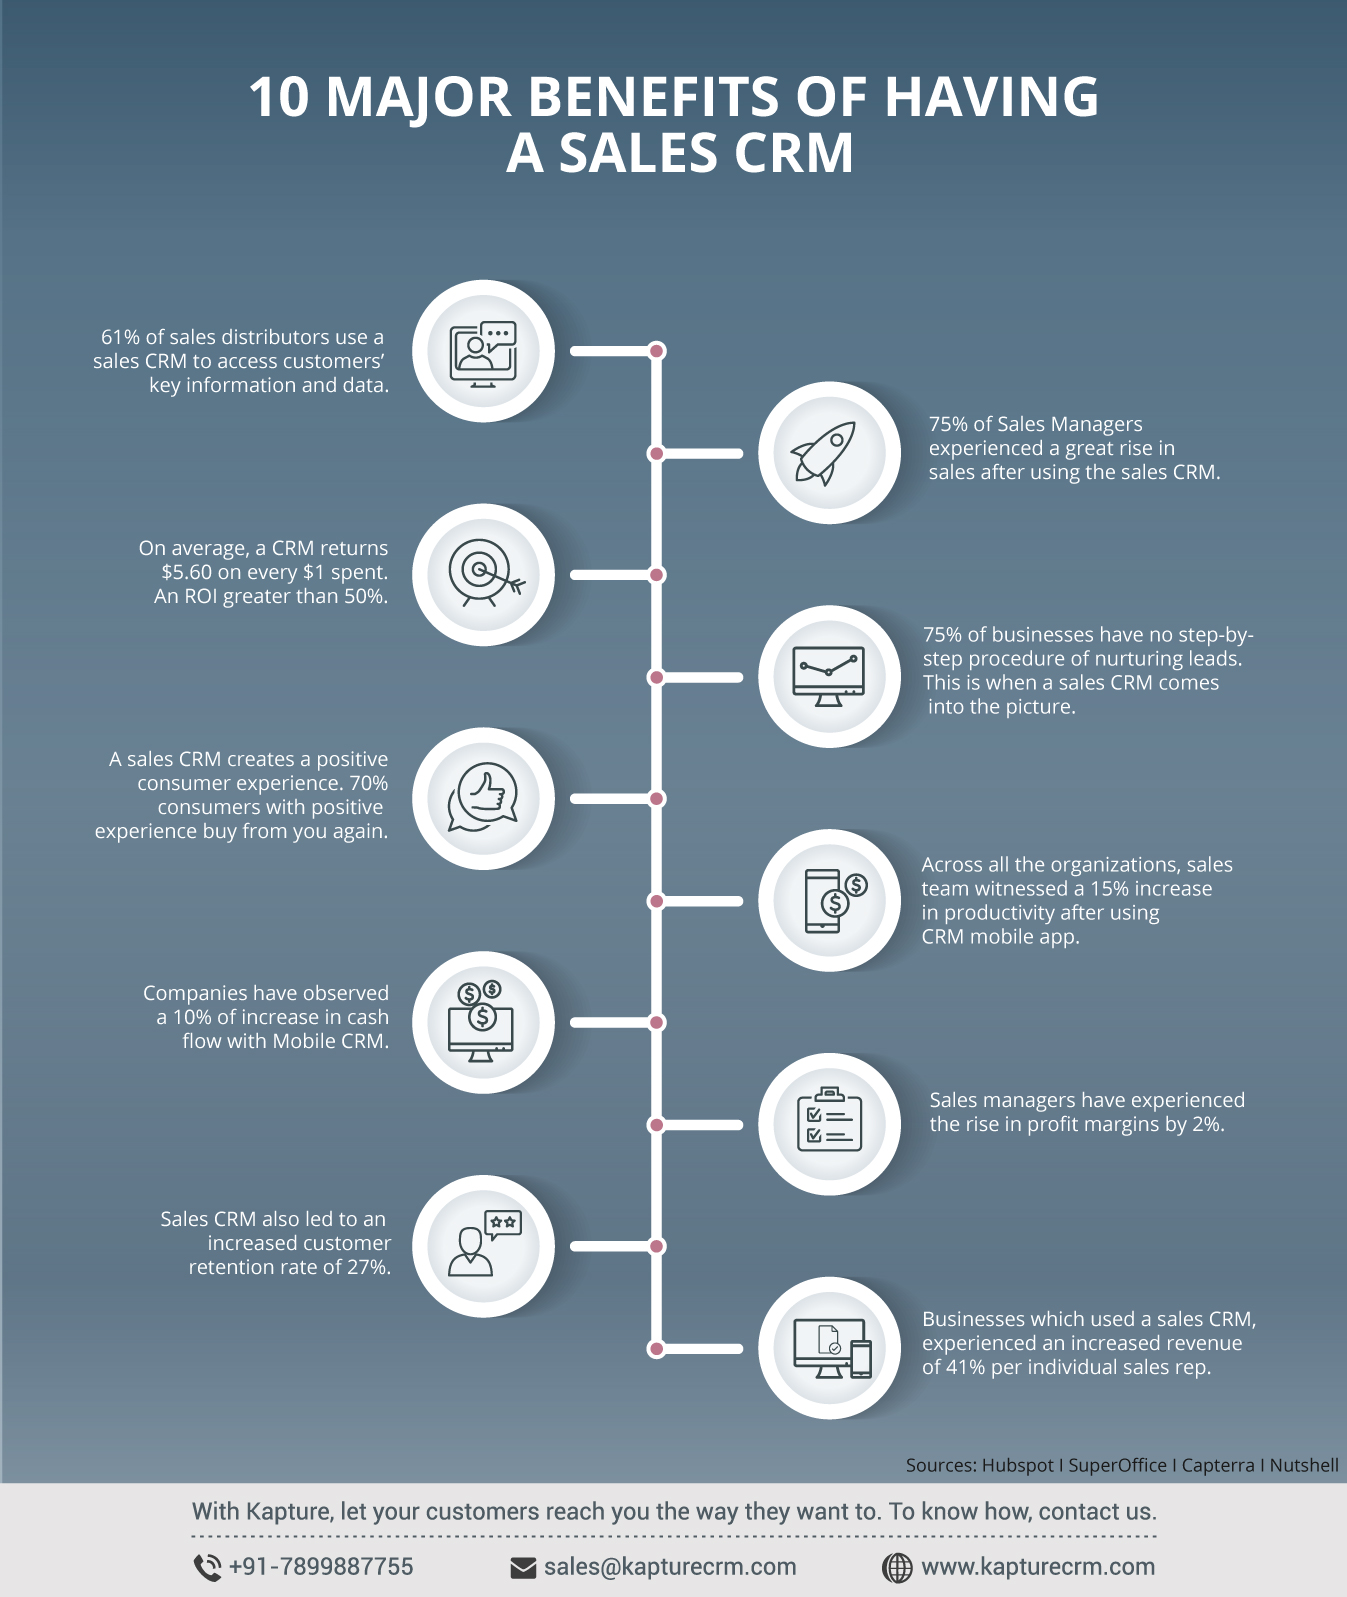 Top 10 Major Benefits Of Having A Sales CRM